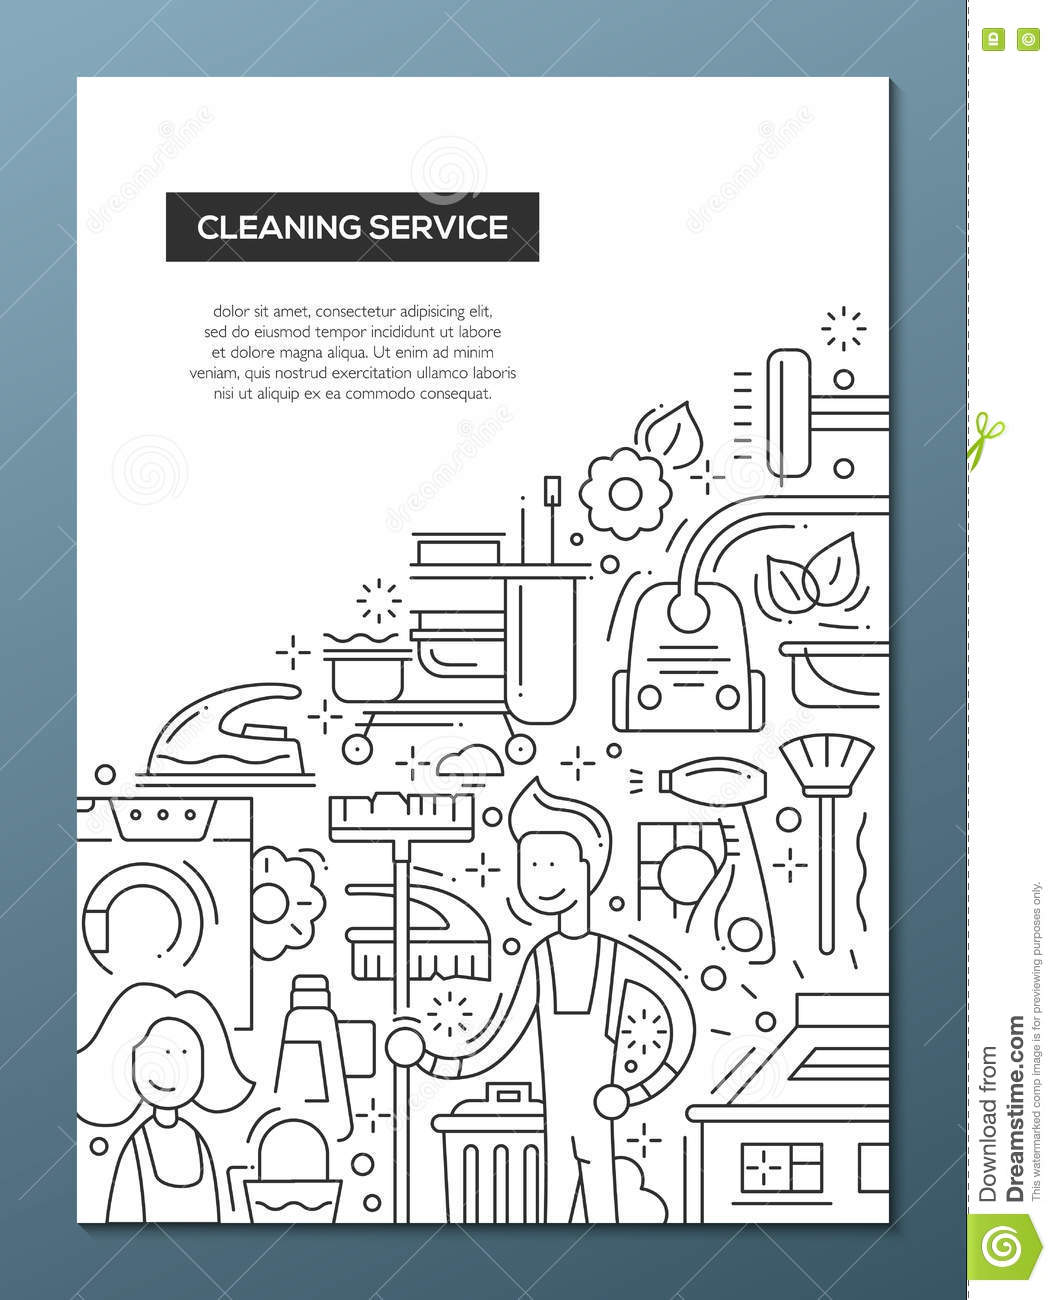 cleaning service brochure templates - cleaning service line design brochure poster template a4